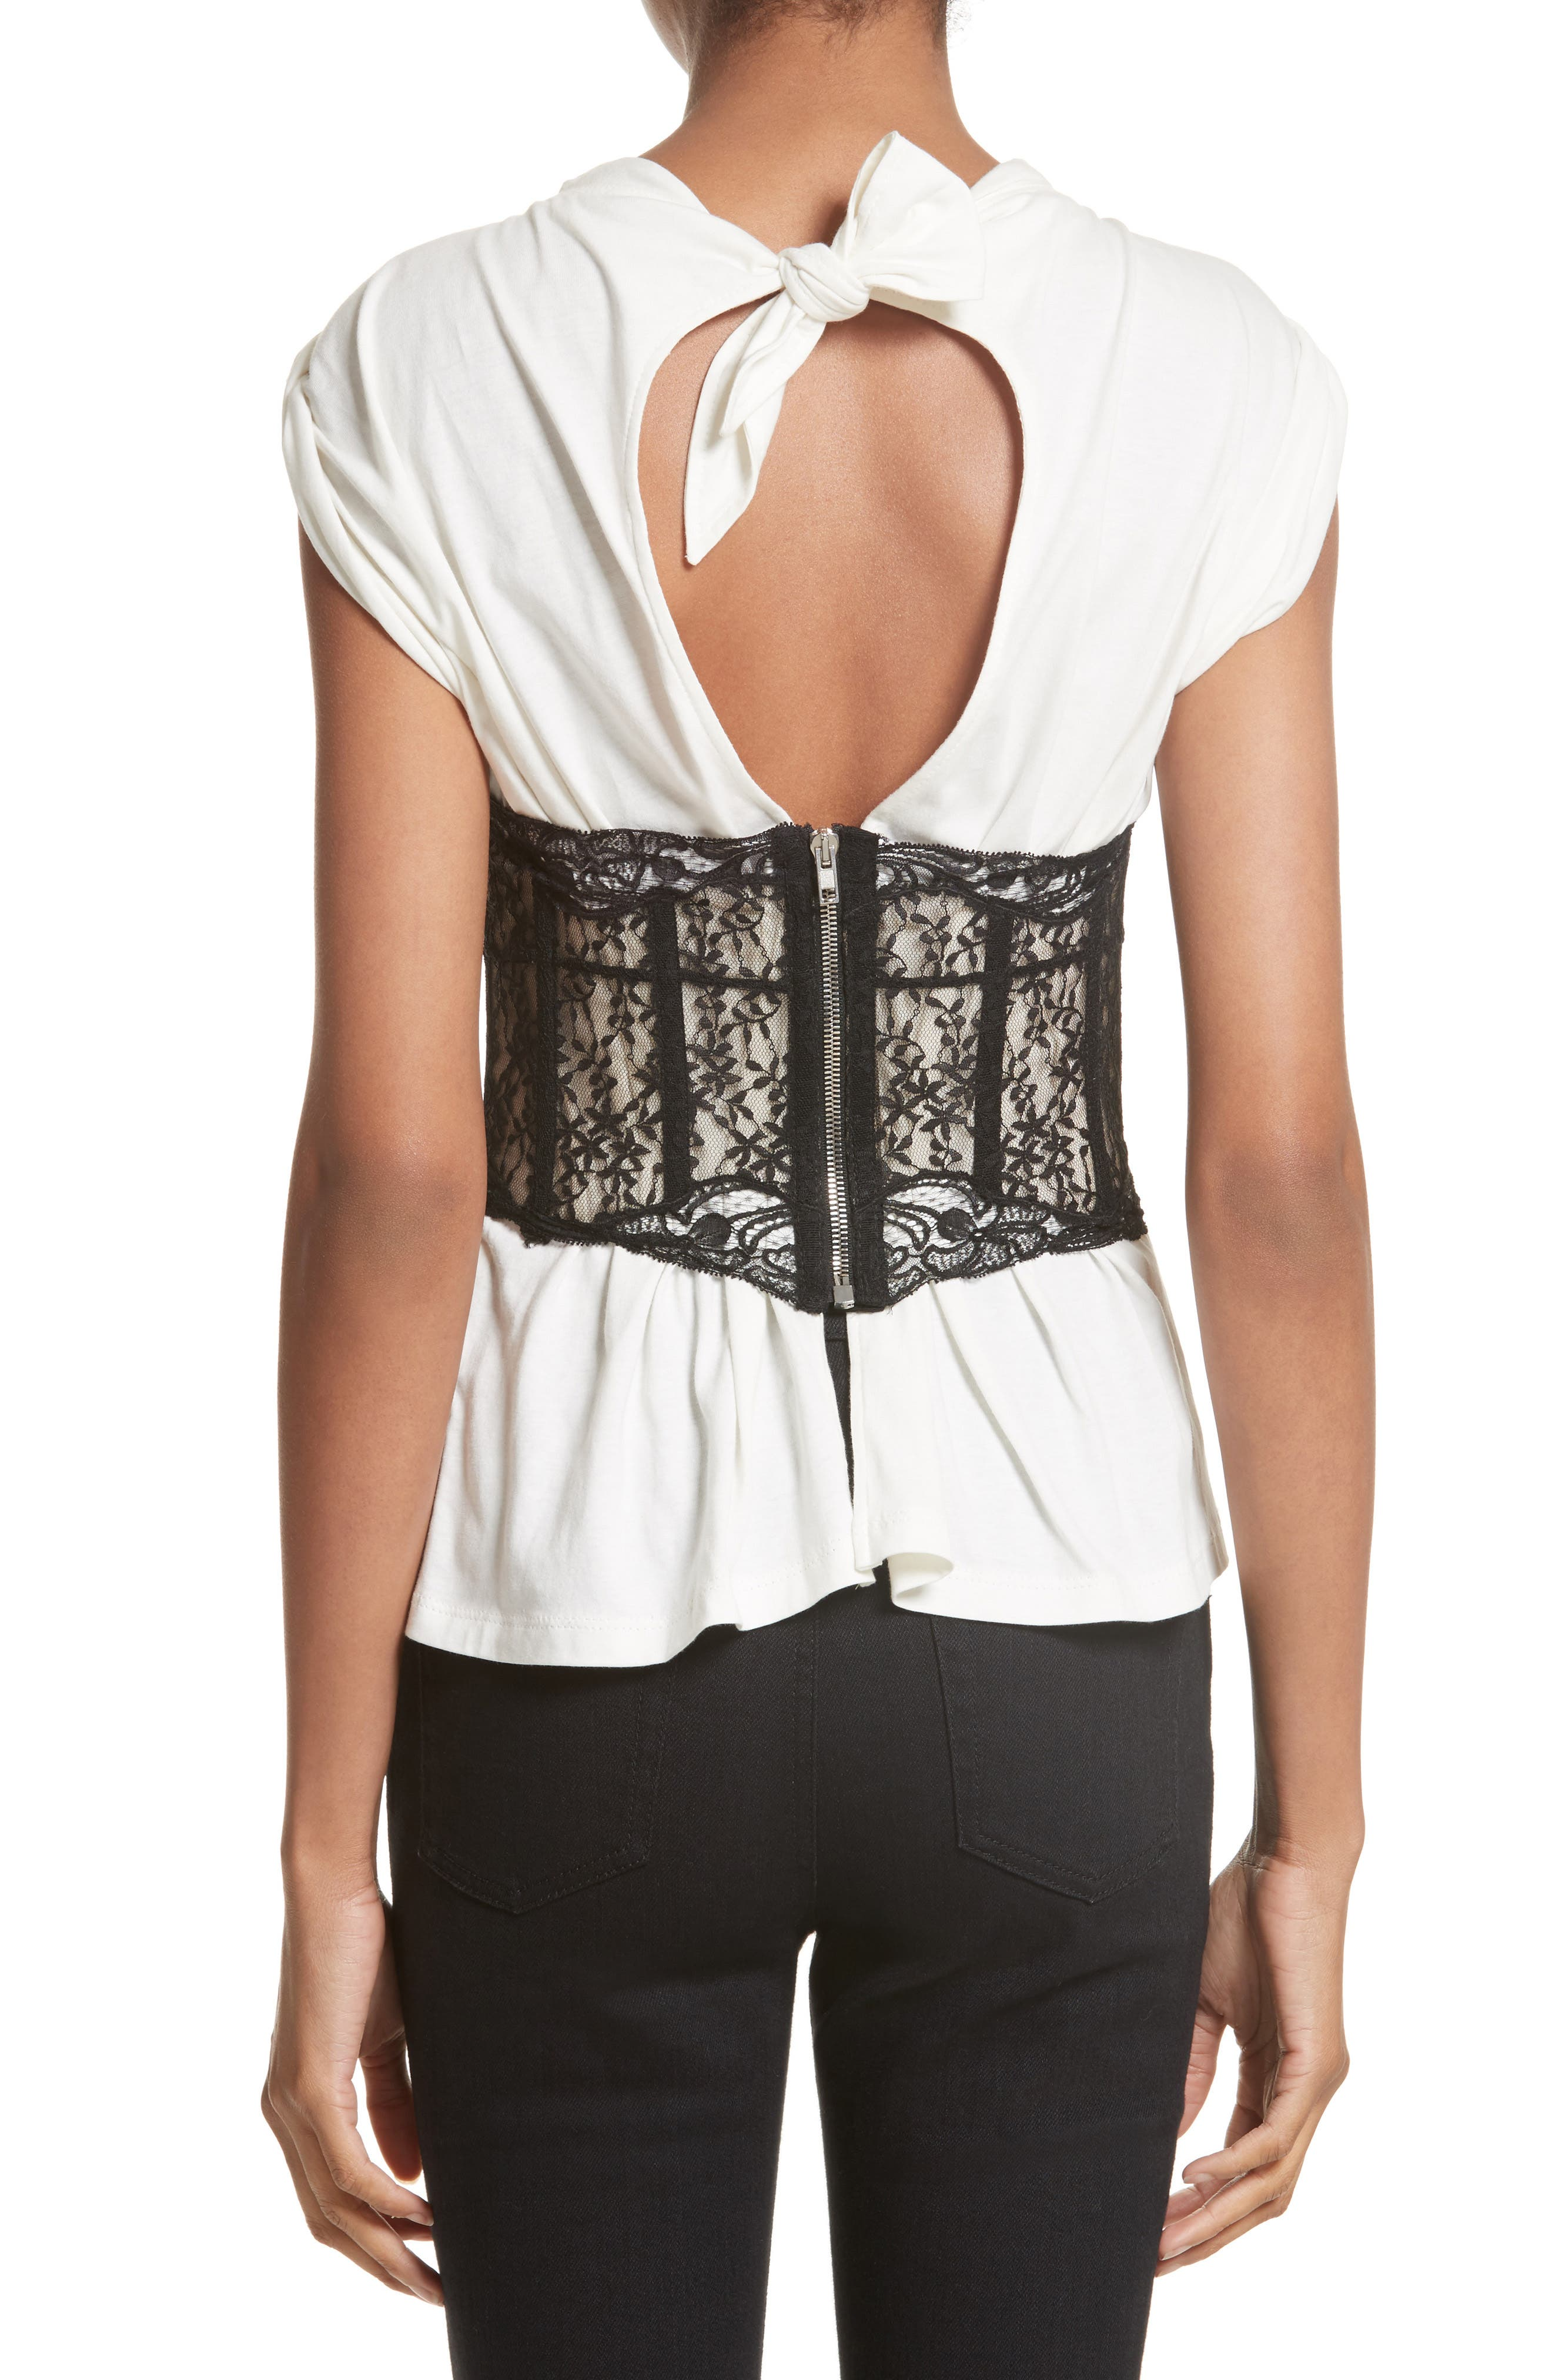 Cotton Top with Lace Bustier,                             Alternate thumbnail 2, color,                             900